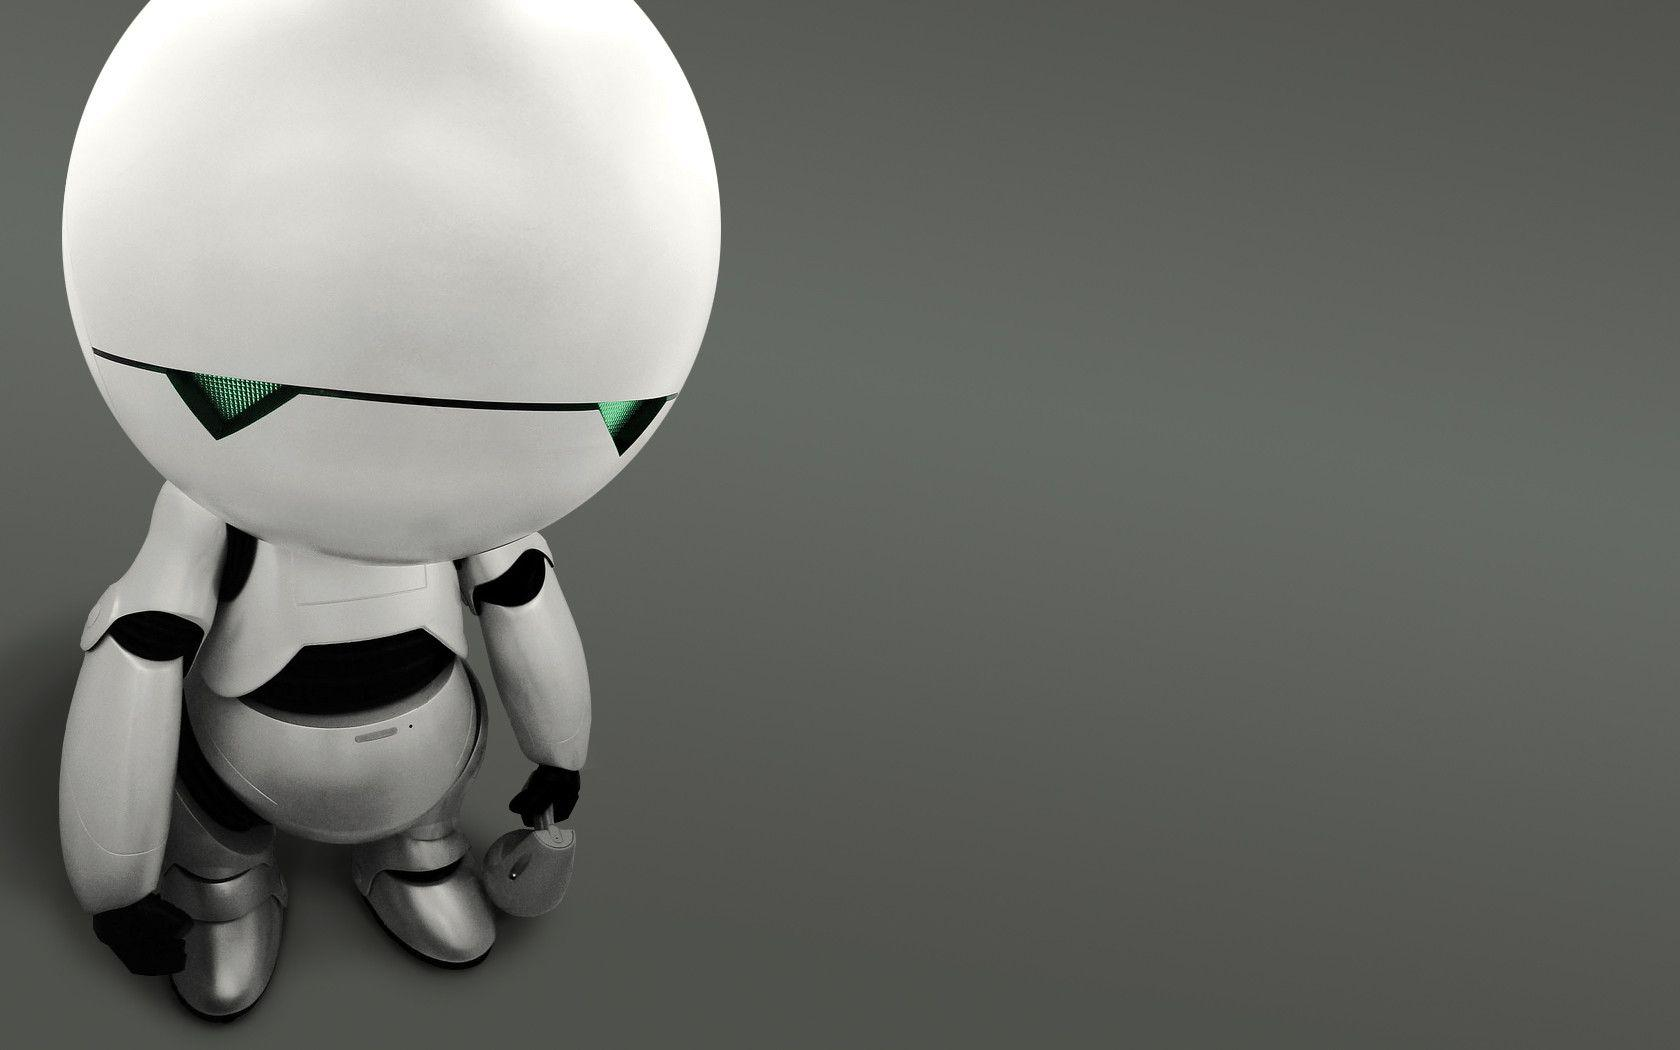 Cool Robot Wallpapers 776 Wallpapers